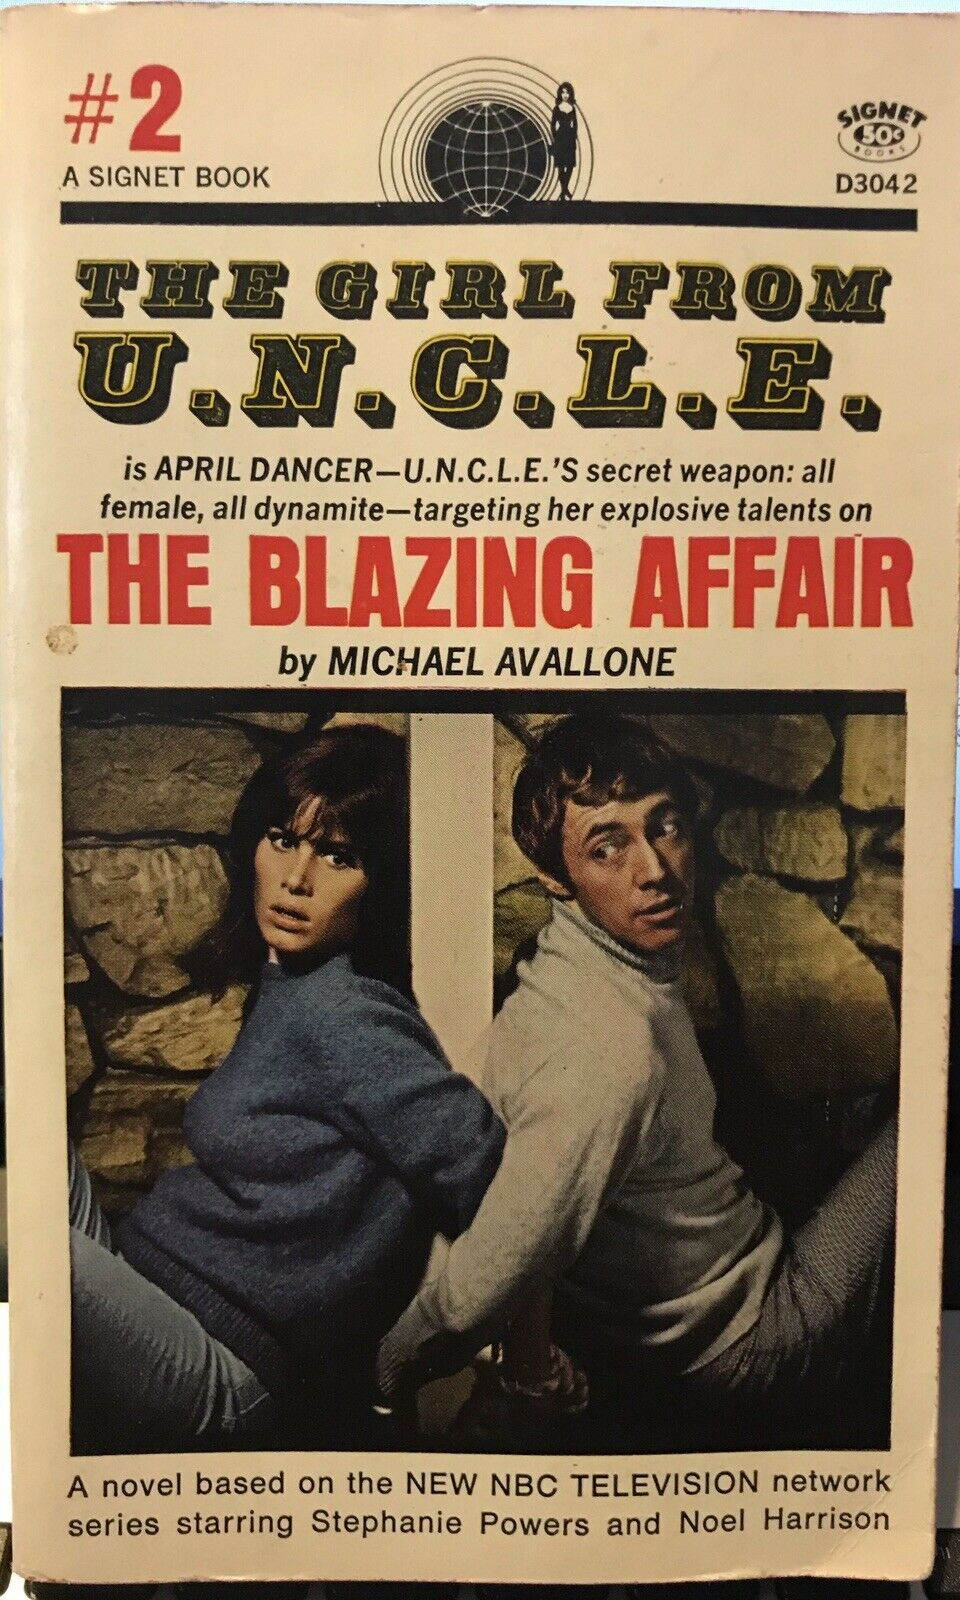 THE GIRL FROM U.N.C.L.E.#2 by Michael Avallone ~ Signet Books #D3042 ~ SCARCE! |